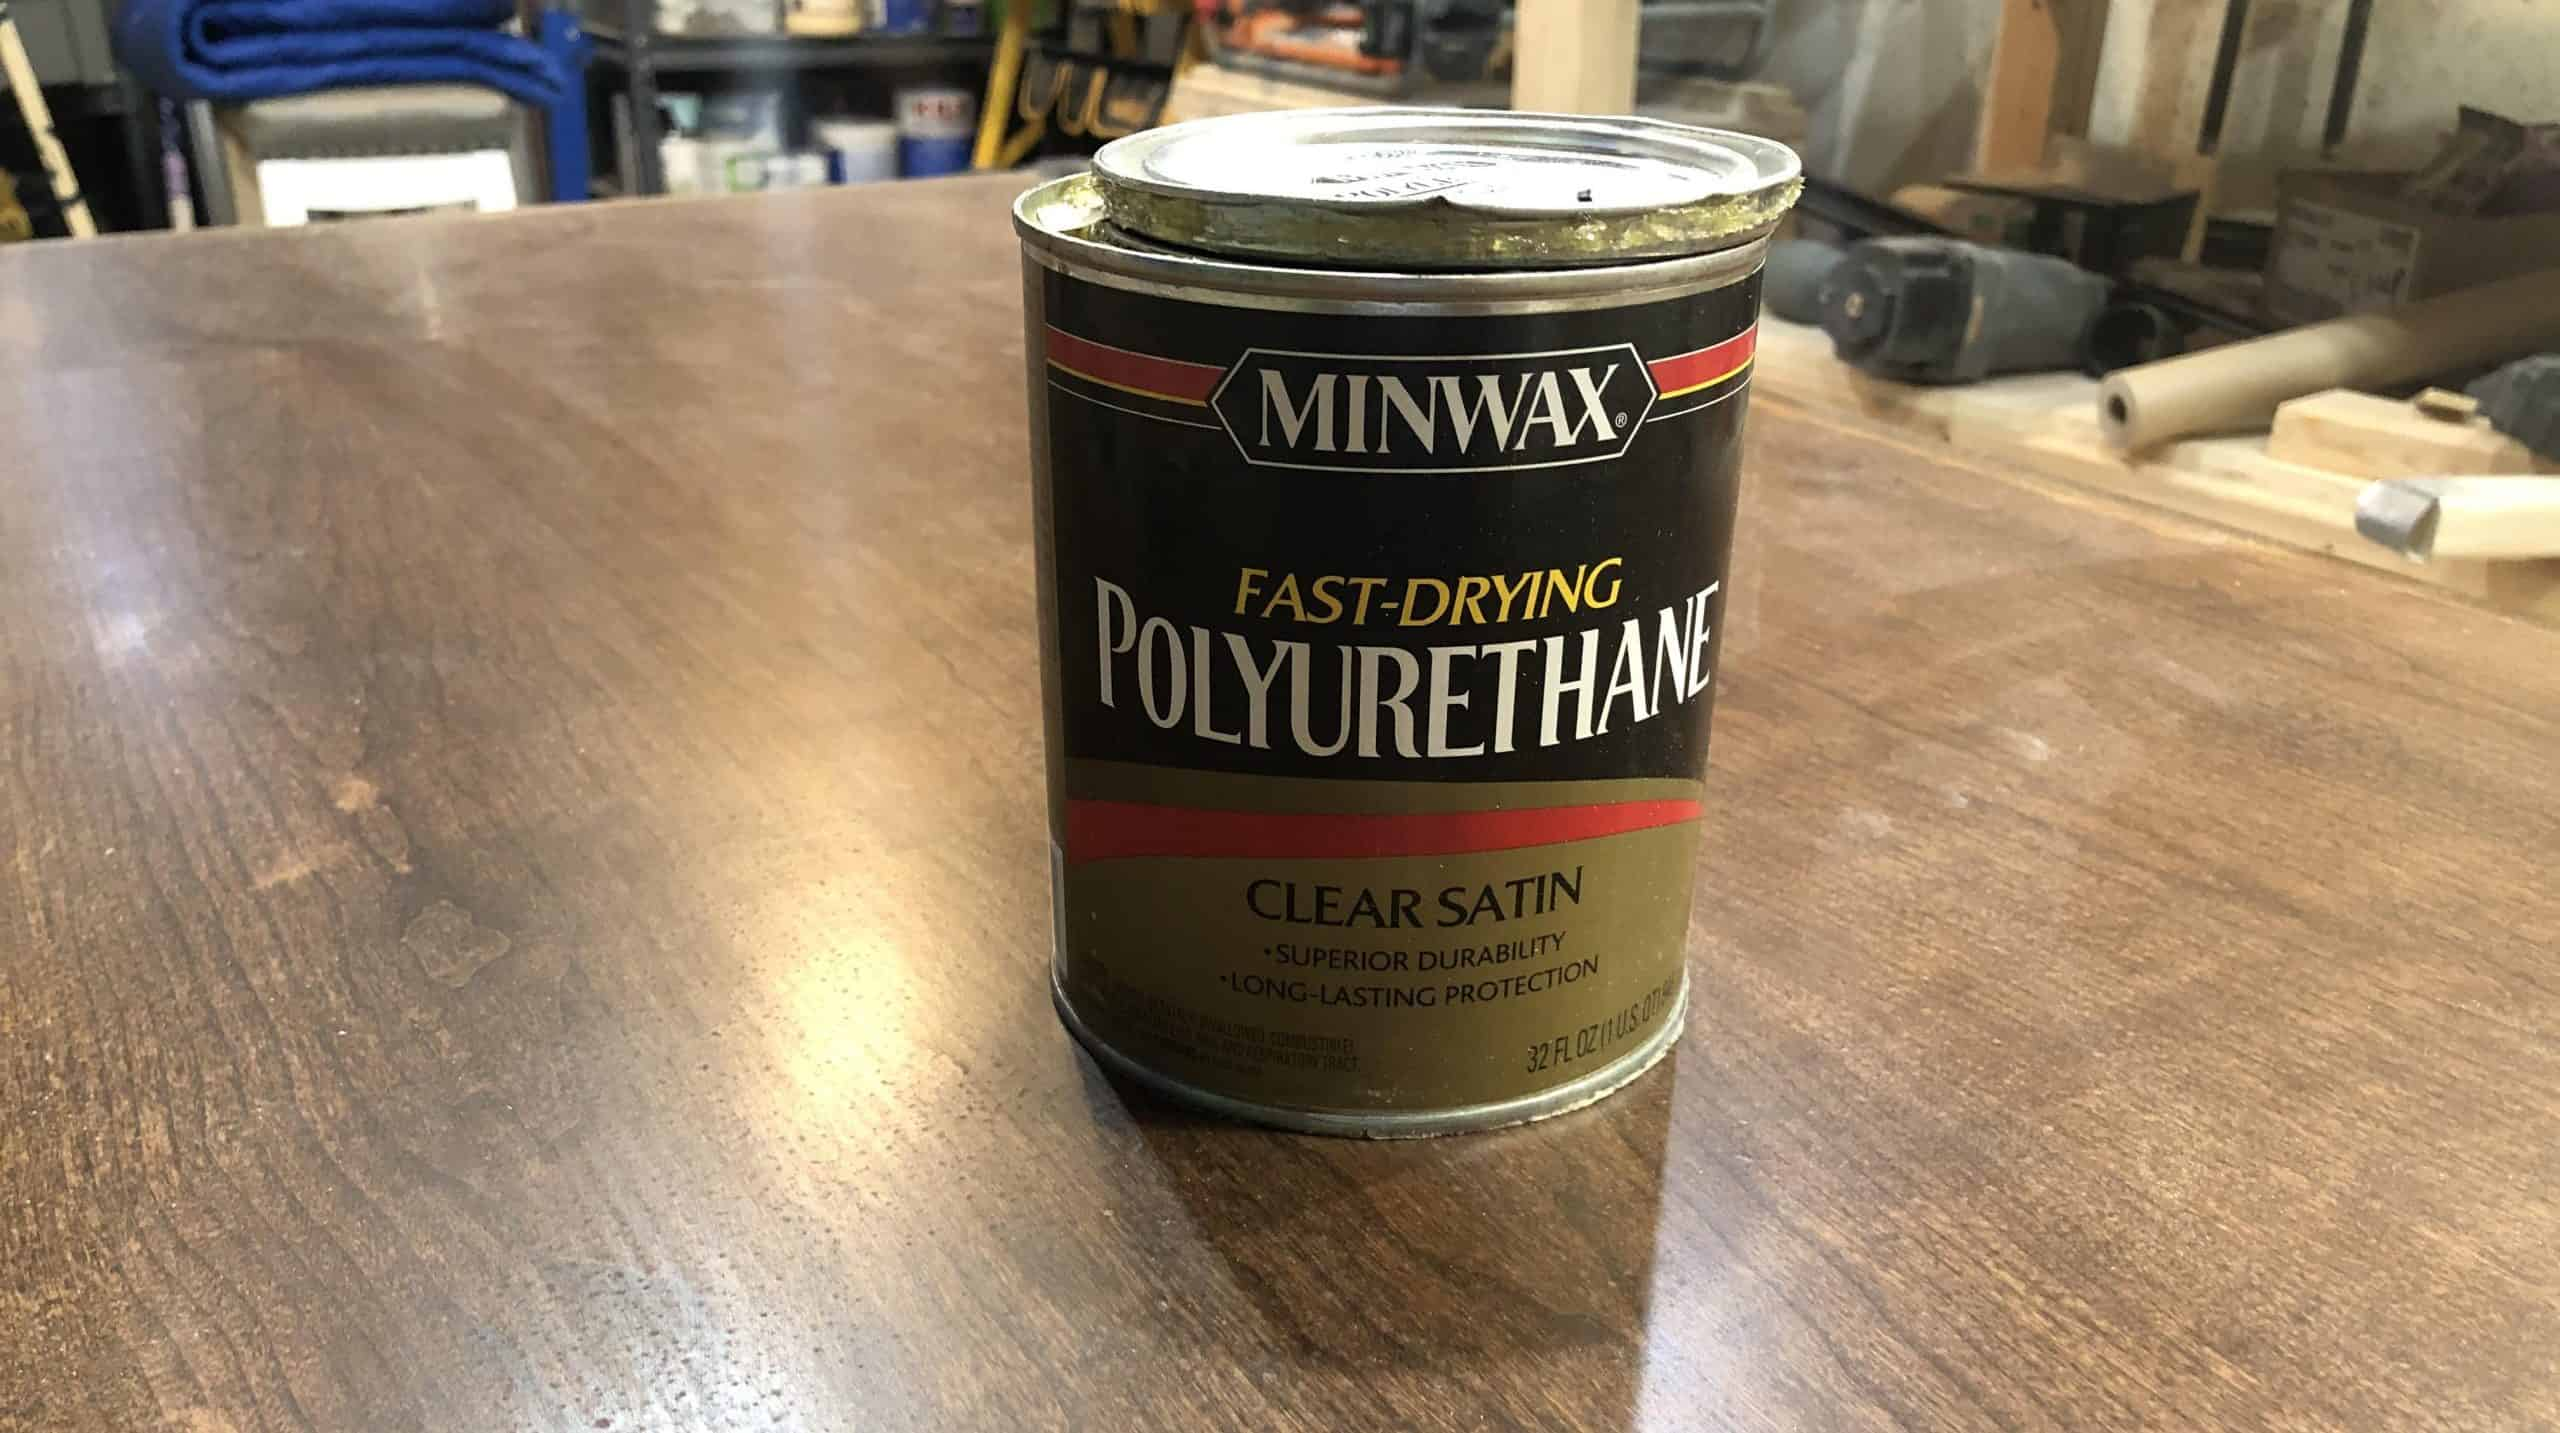 How Long Does It Take for Minwax Polyurethane to Dry